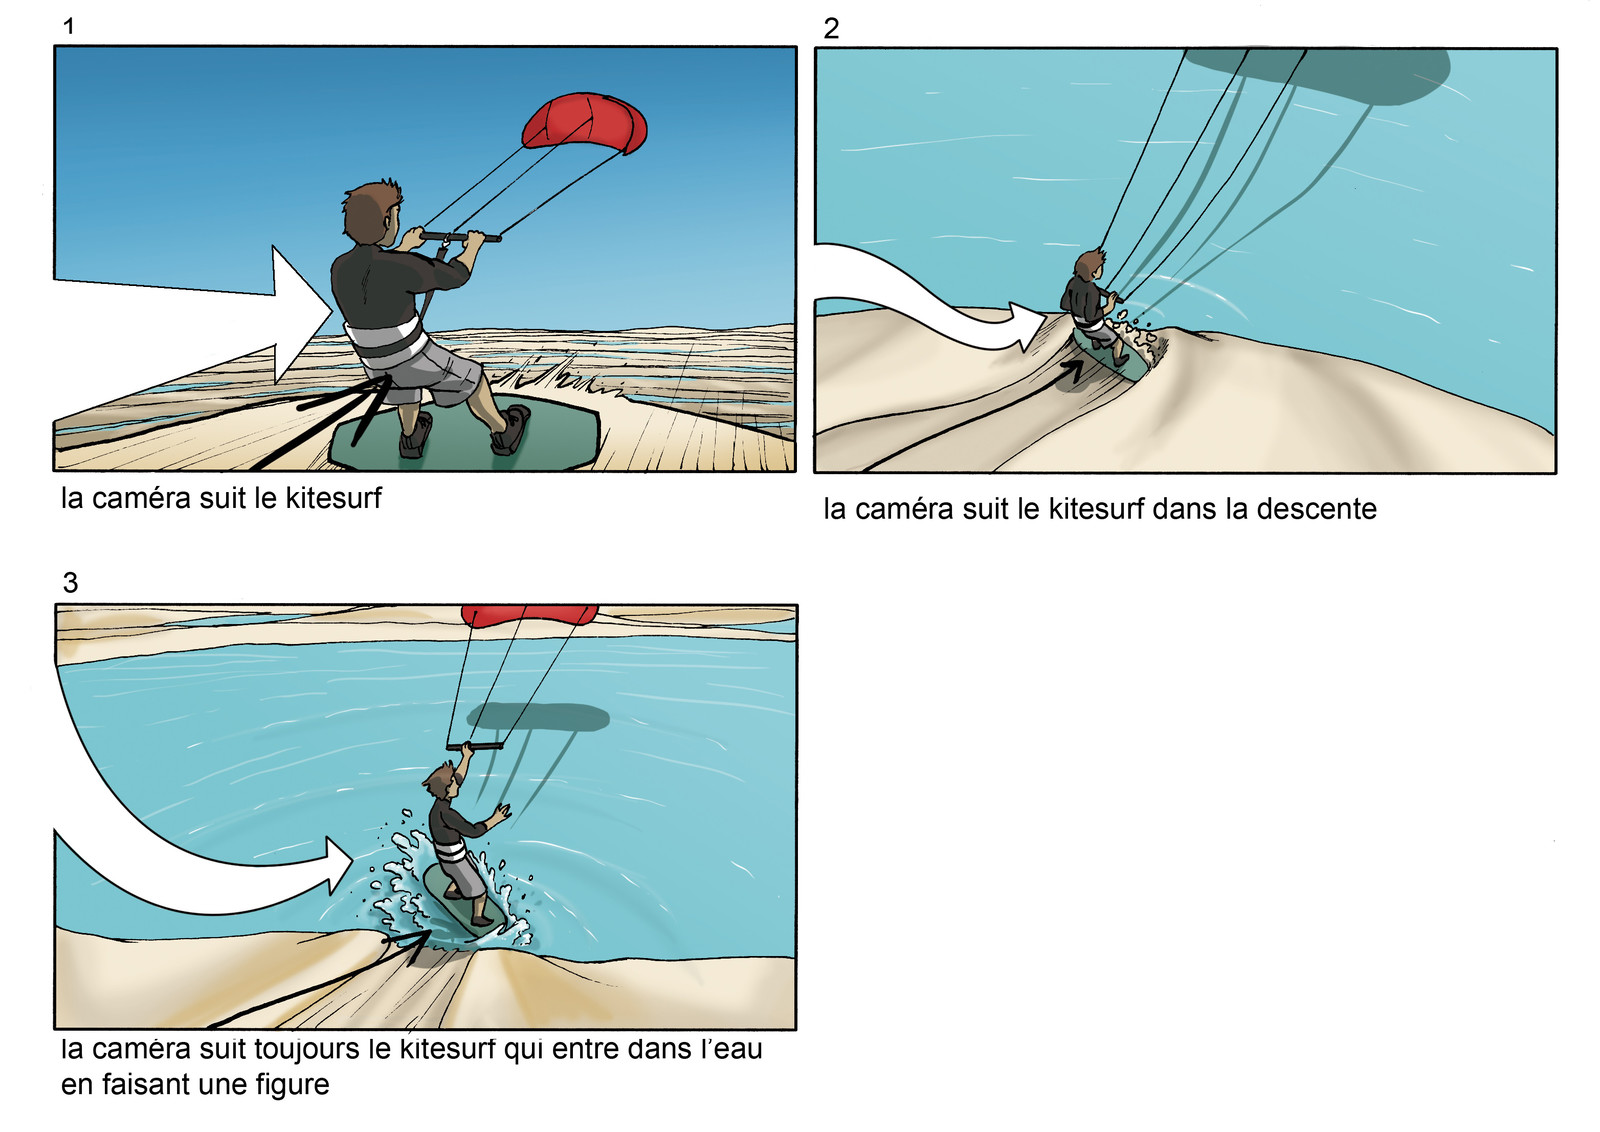 Storyboard for an advertising about KiteSurf  - Page 2 - (In French)